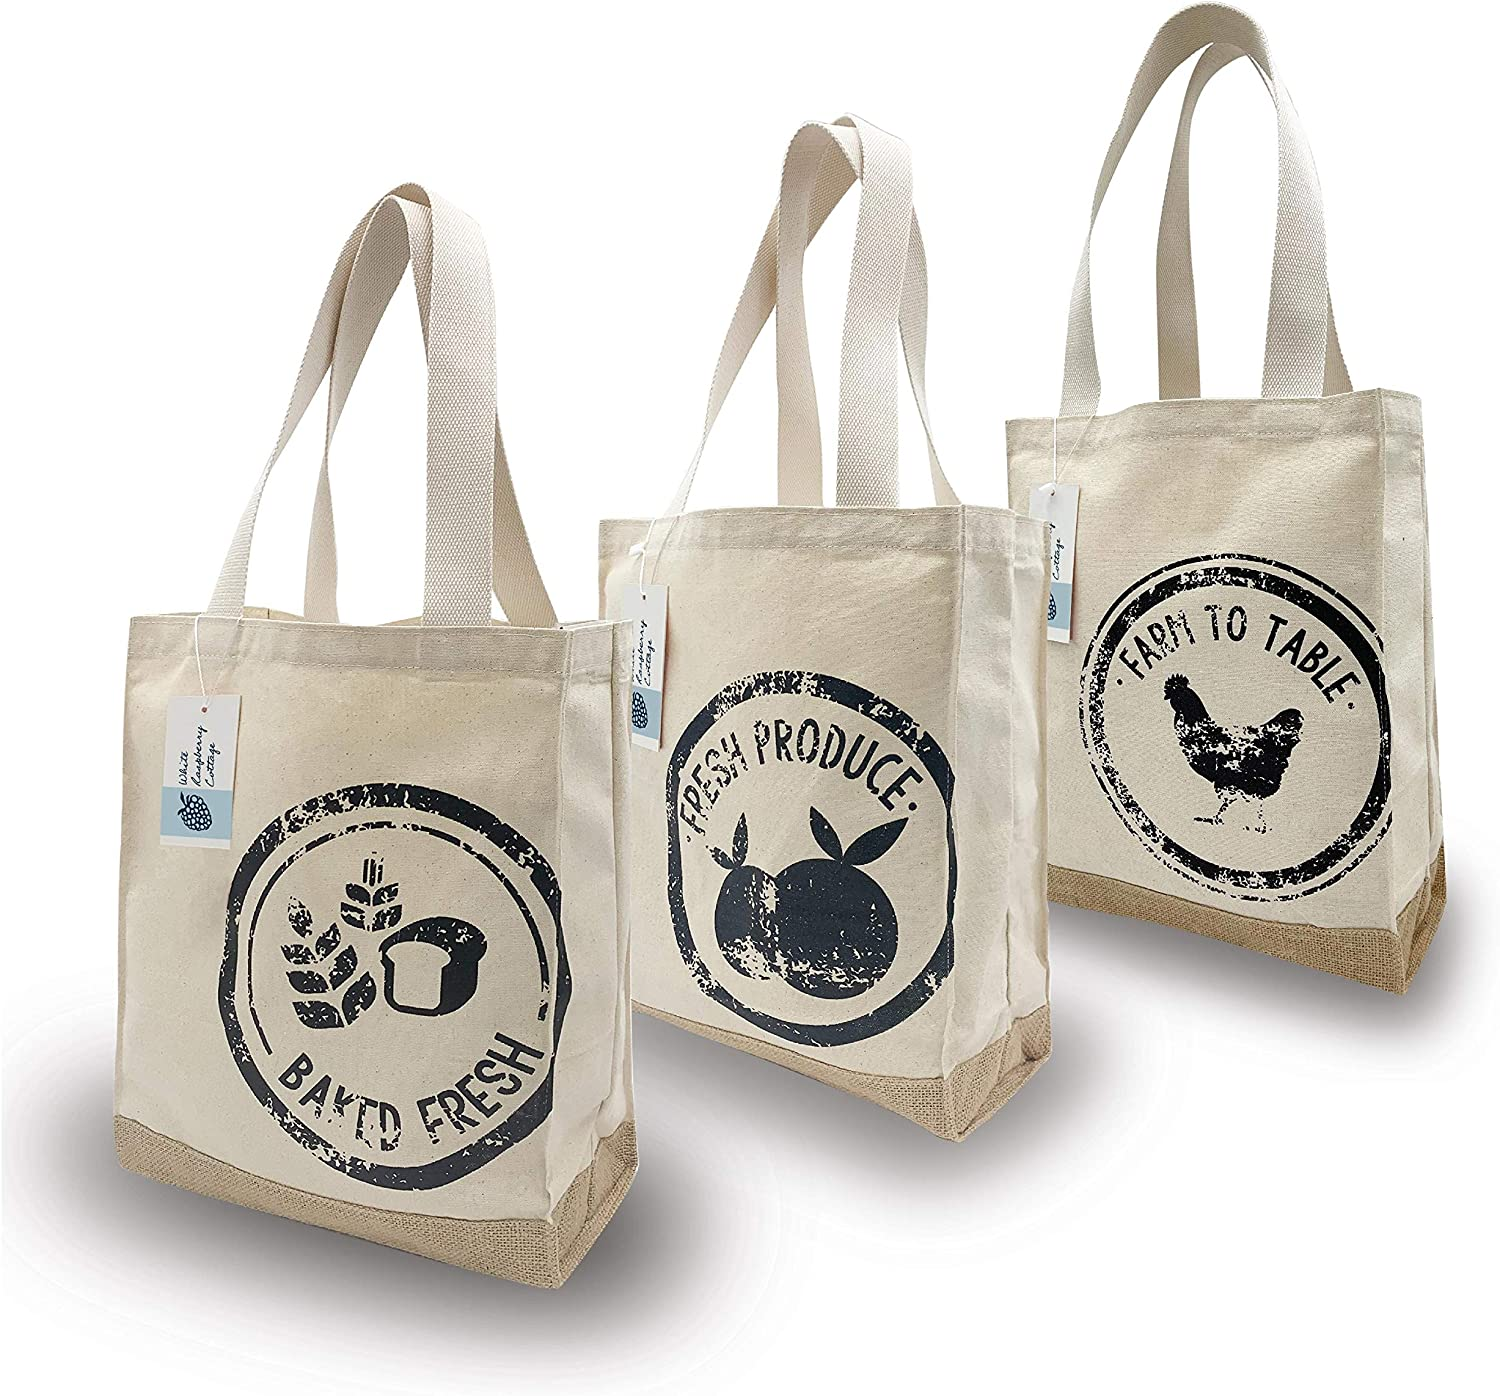 White Raspberry Cottage MADE IN THE USA Reusable Natural Organic Canvas & Jute Grocery Shopping Bag, Farmers Market Tote